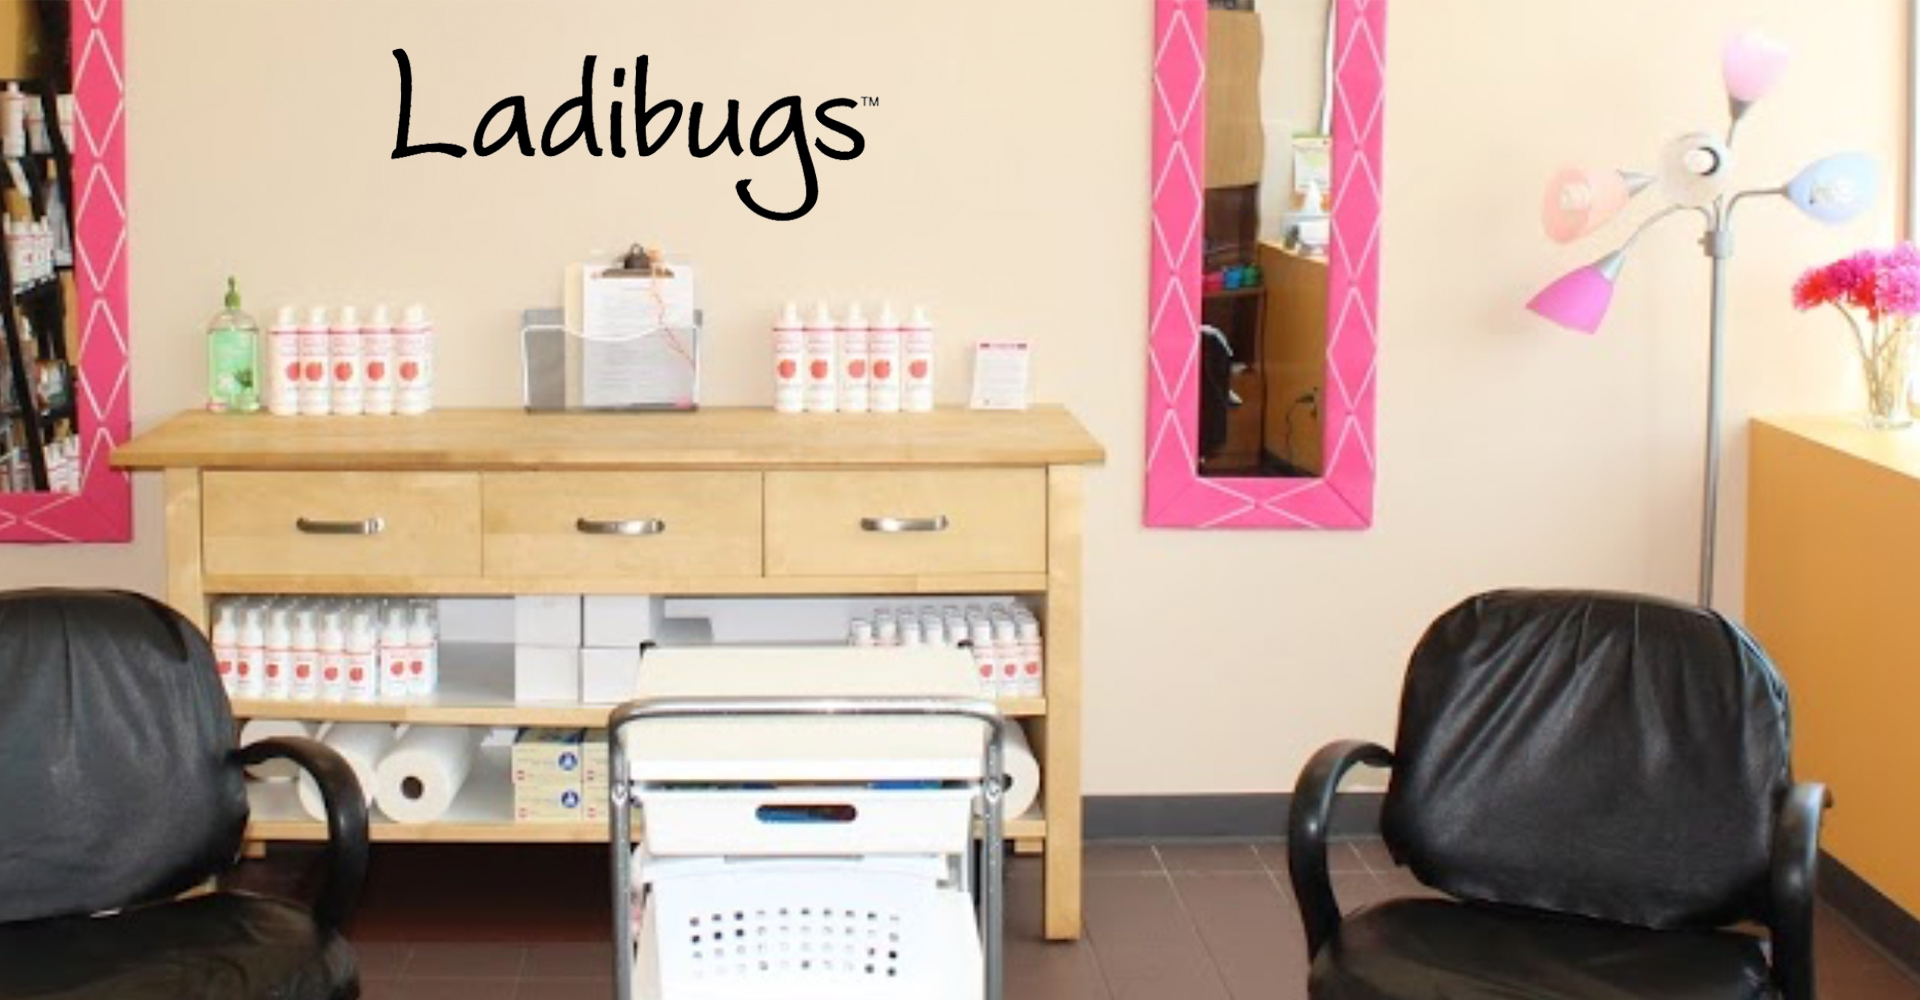 Ladibugs Lice Removal Clinic